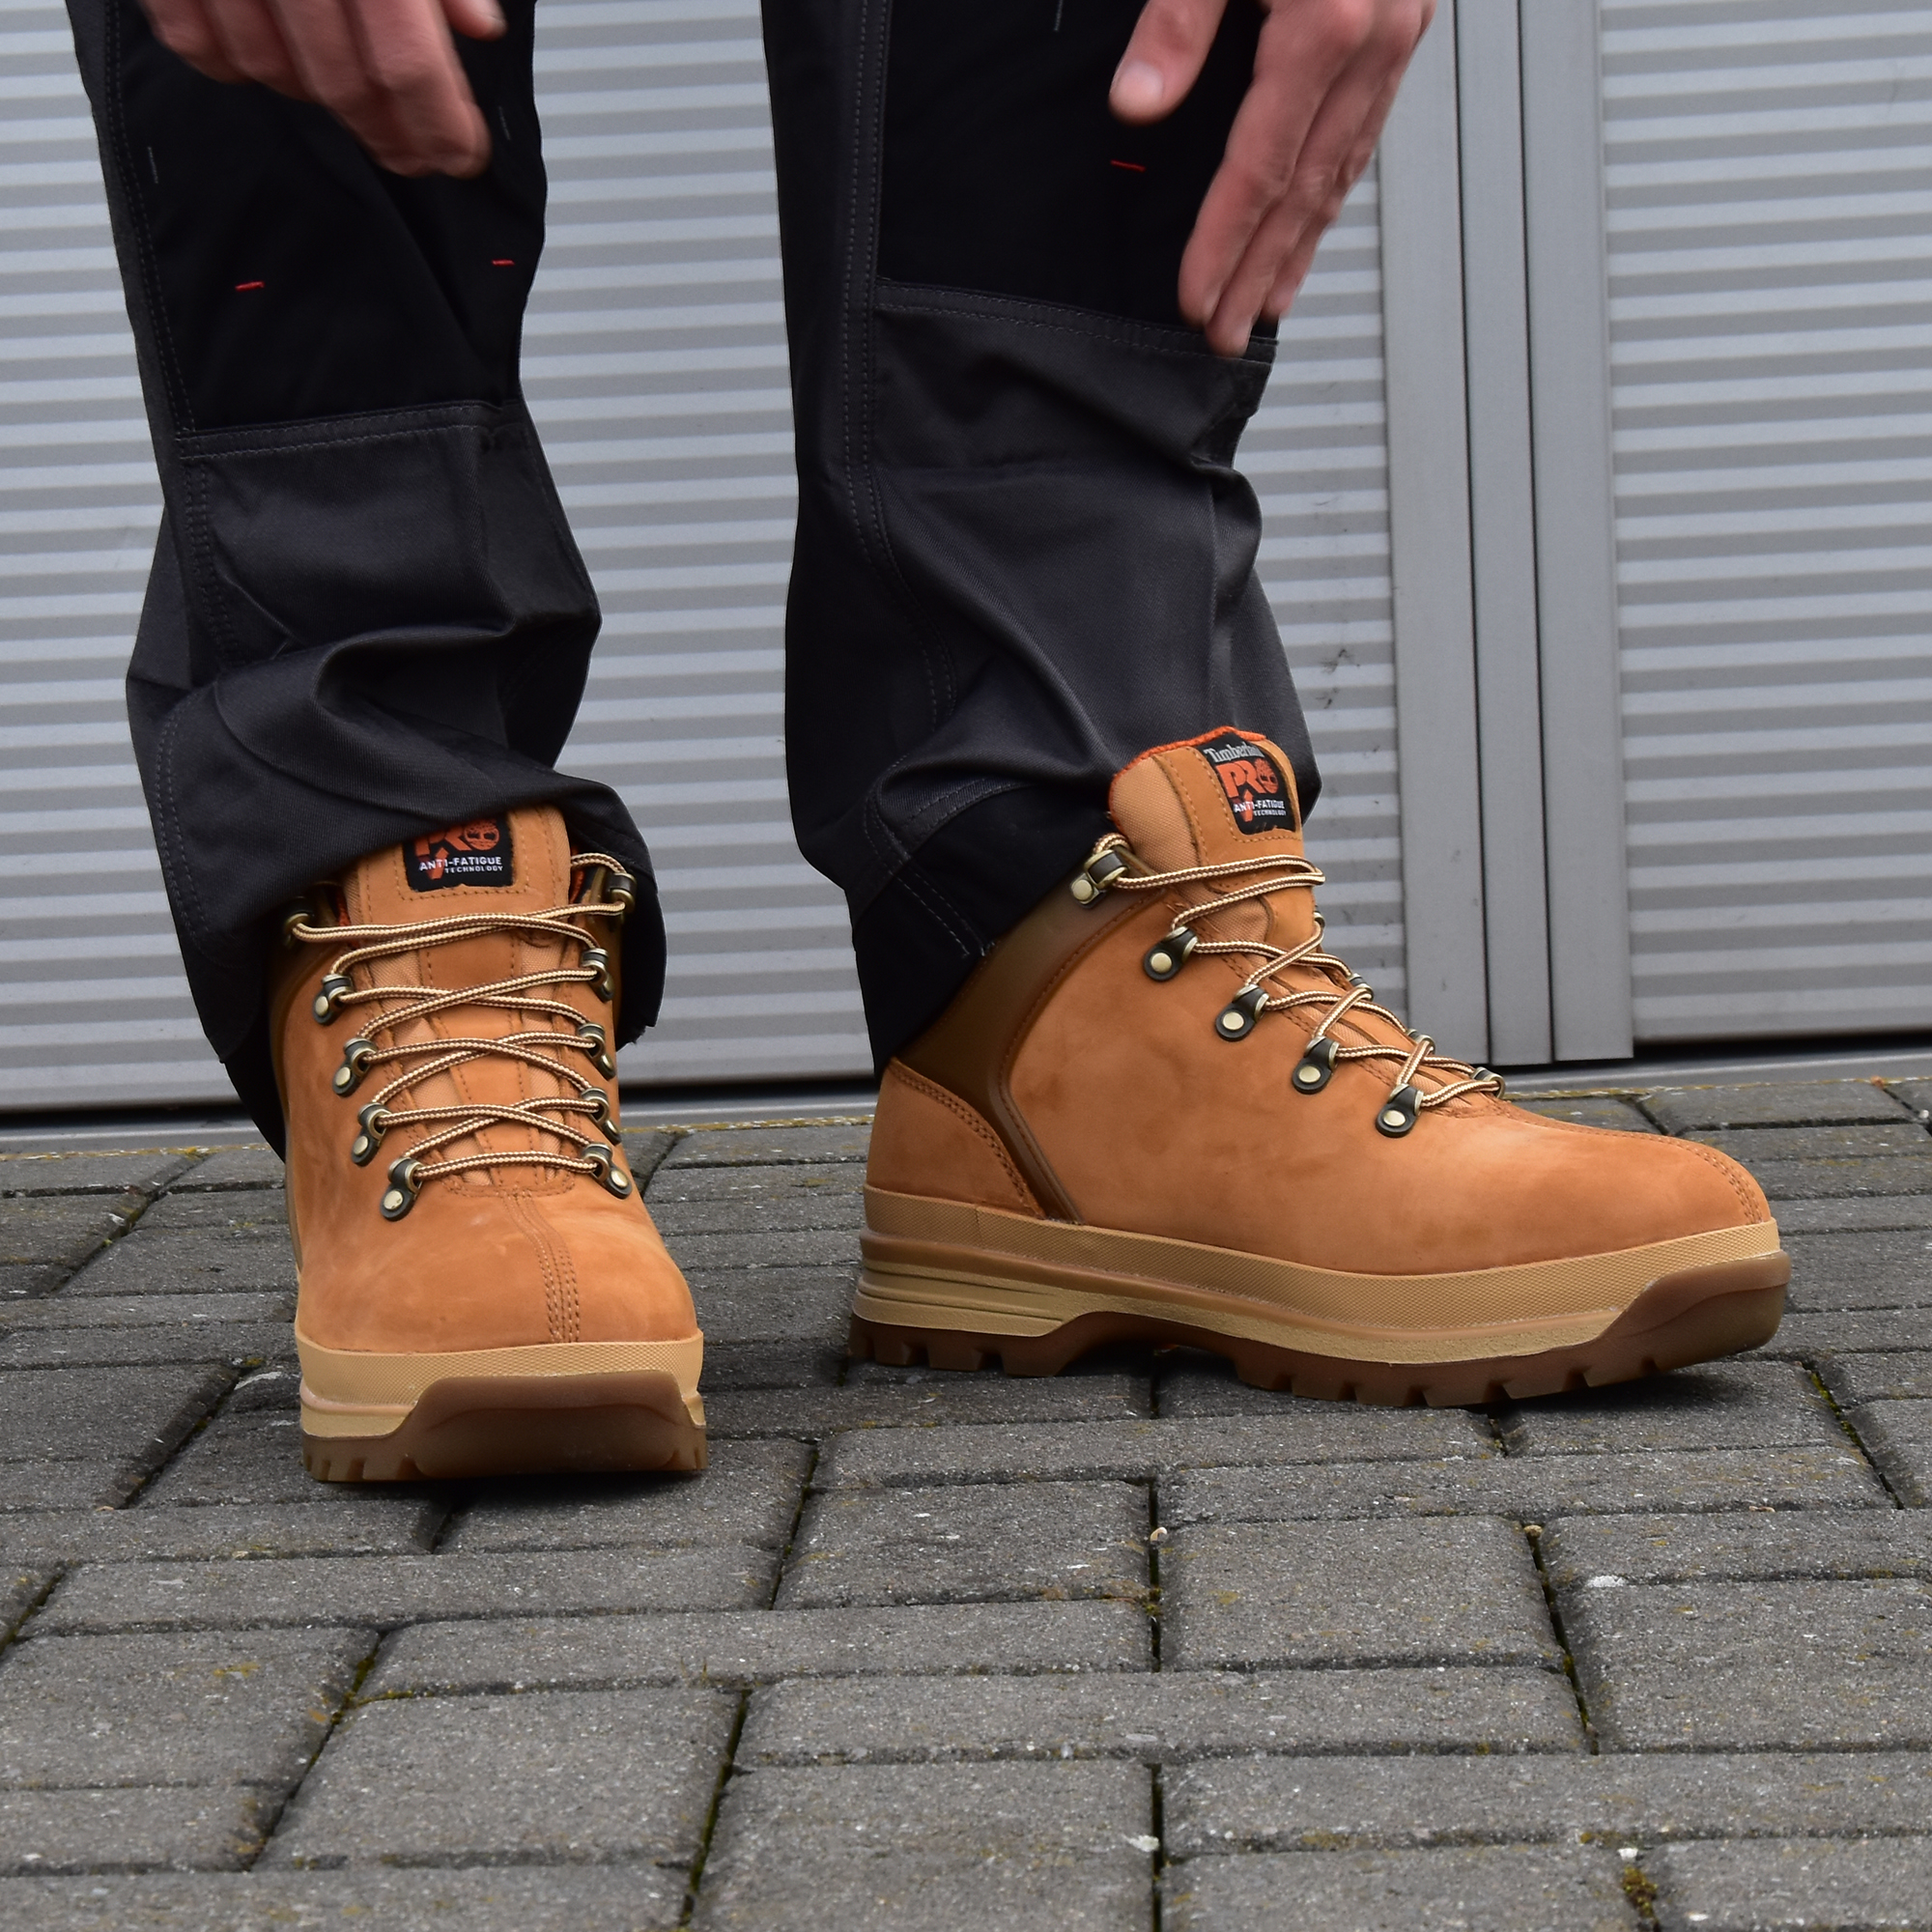 6529133dc07 ... Timberland Pro 25948 Split Rock XT Safety Boots - Honey_Alt_Image_5